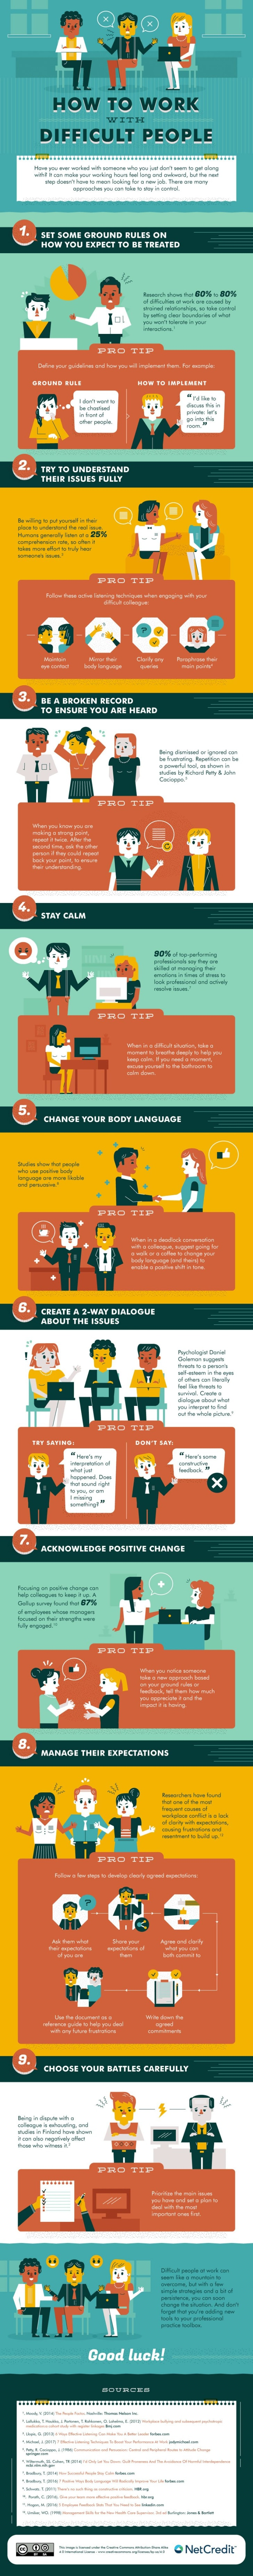 An infographic by NetCredit on how to get along with difficult co-workers.